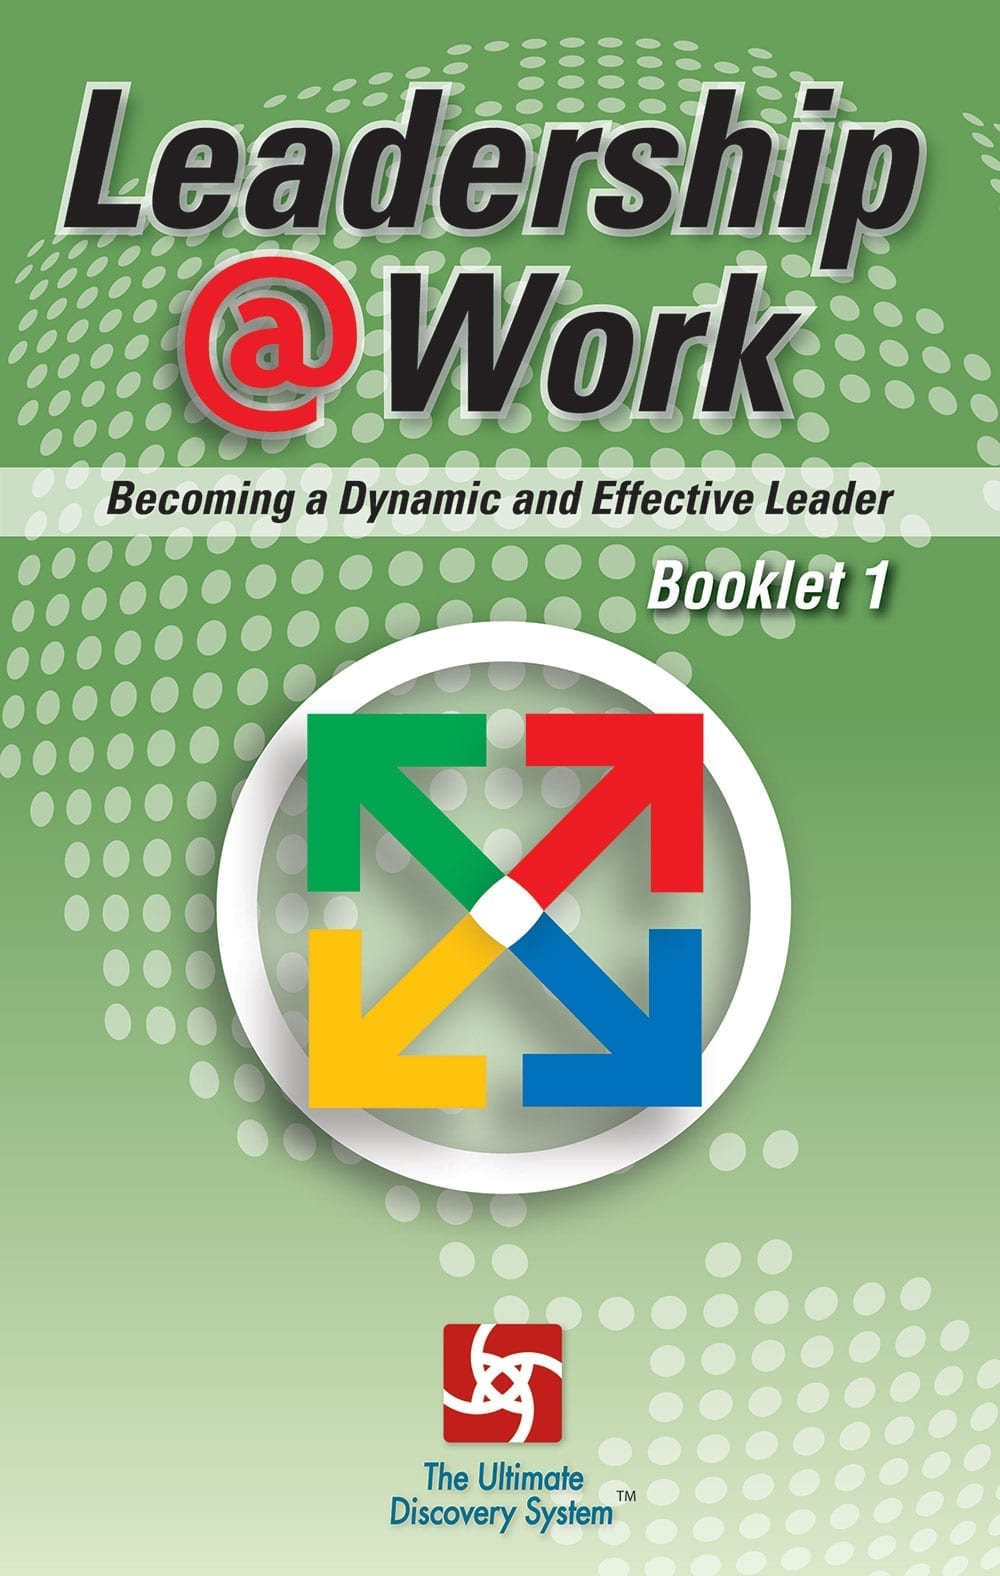 Leadership @ Work – Booklet 1